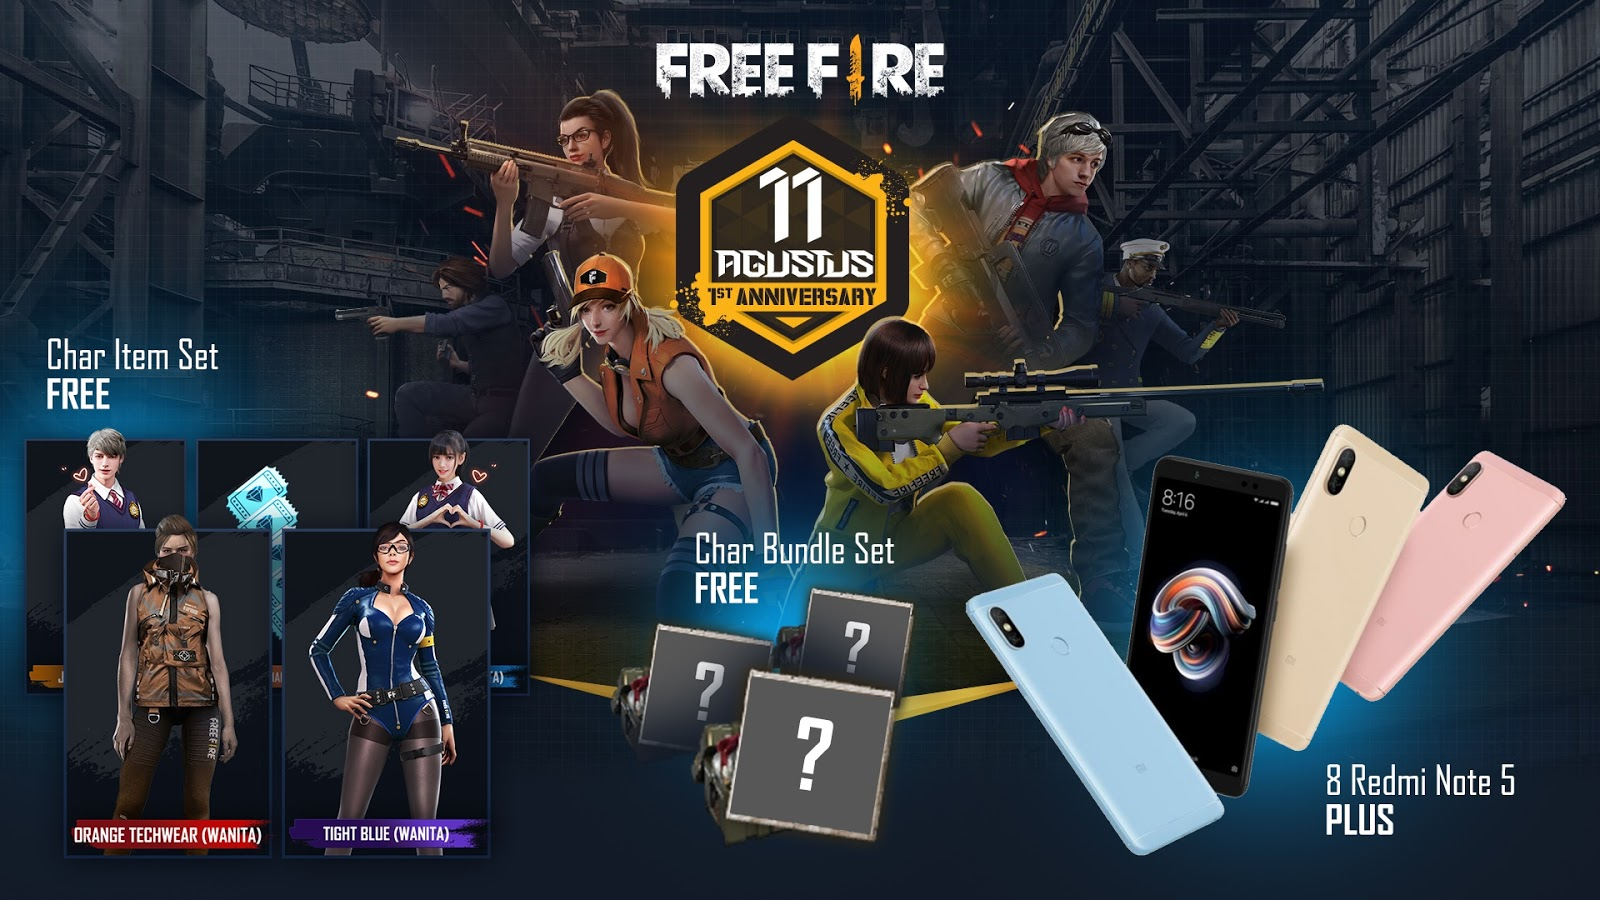 Firediaxyz Free Fire Hack Mod Unlimited Everything